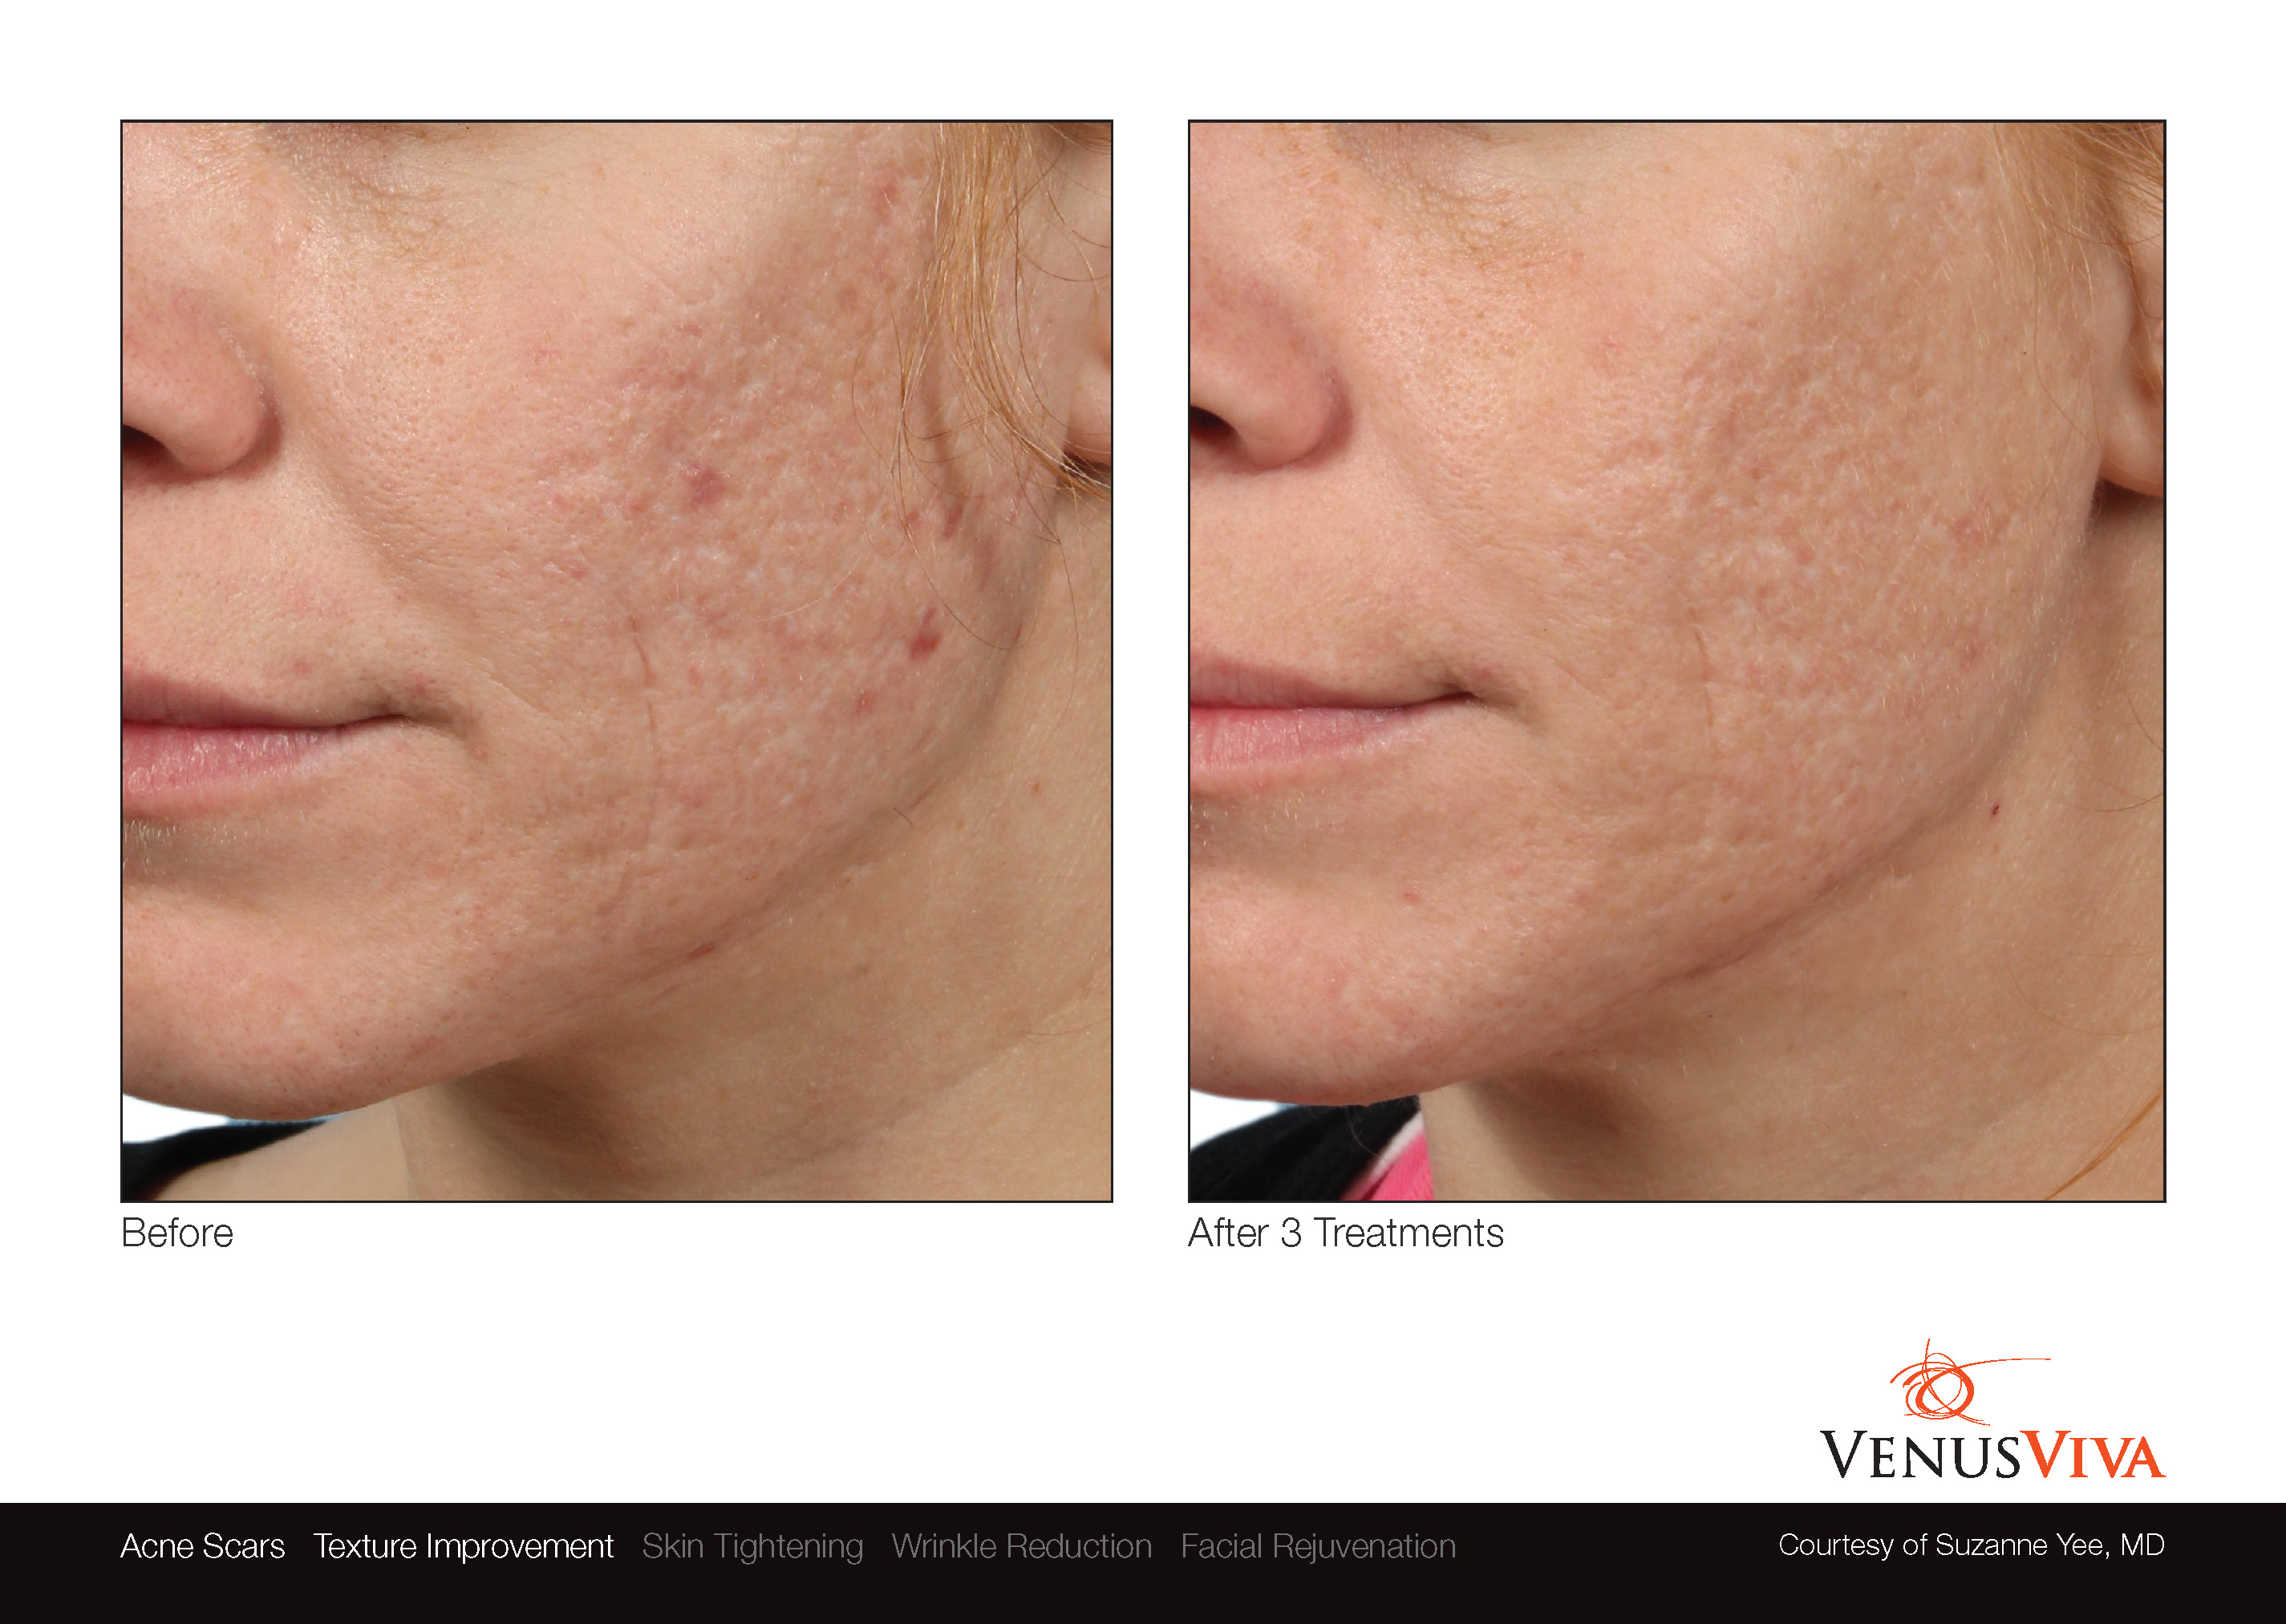 Skin Resurfacing Austin | Venus Viva | Acne Scars | Texture Improvement | Before & After